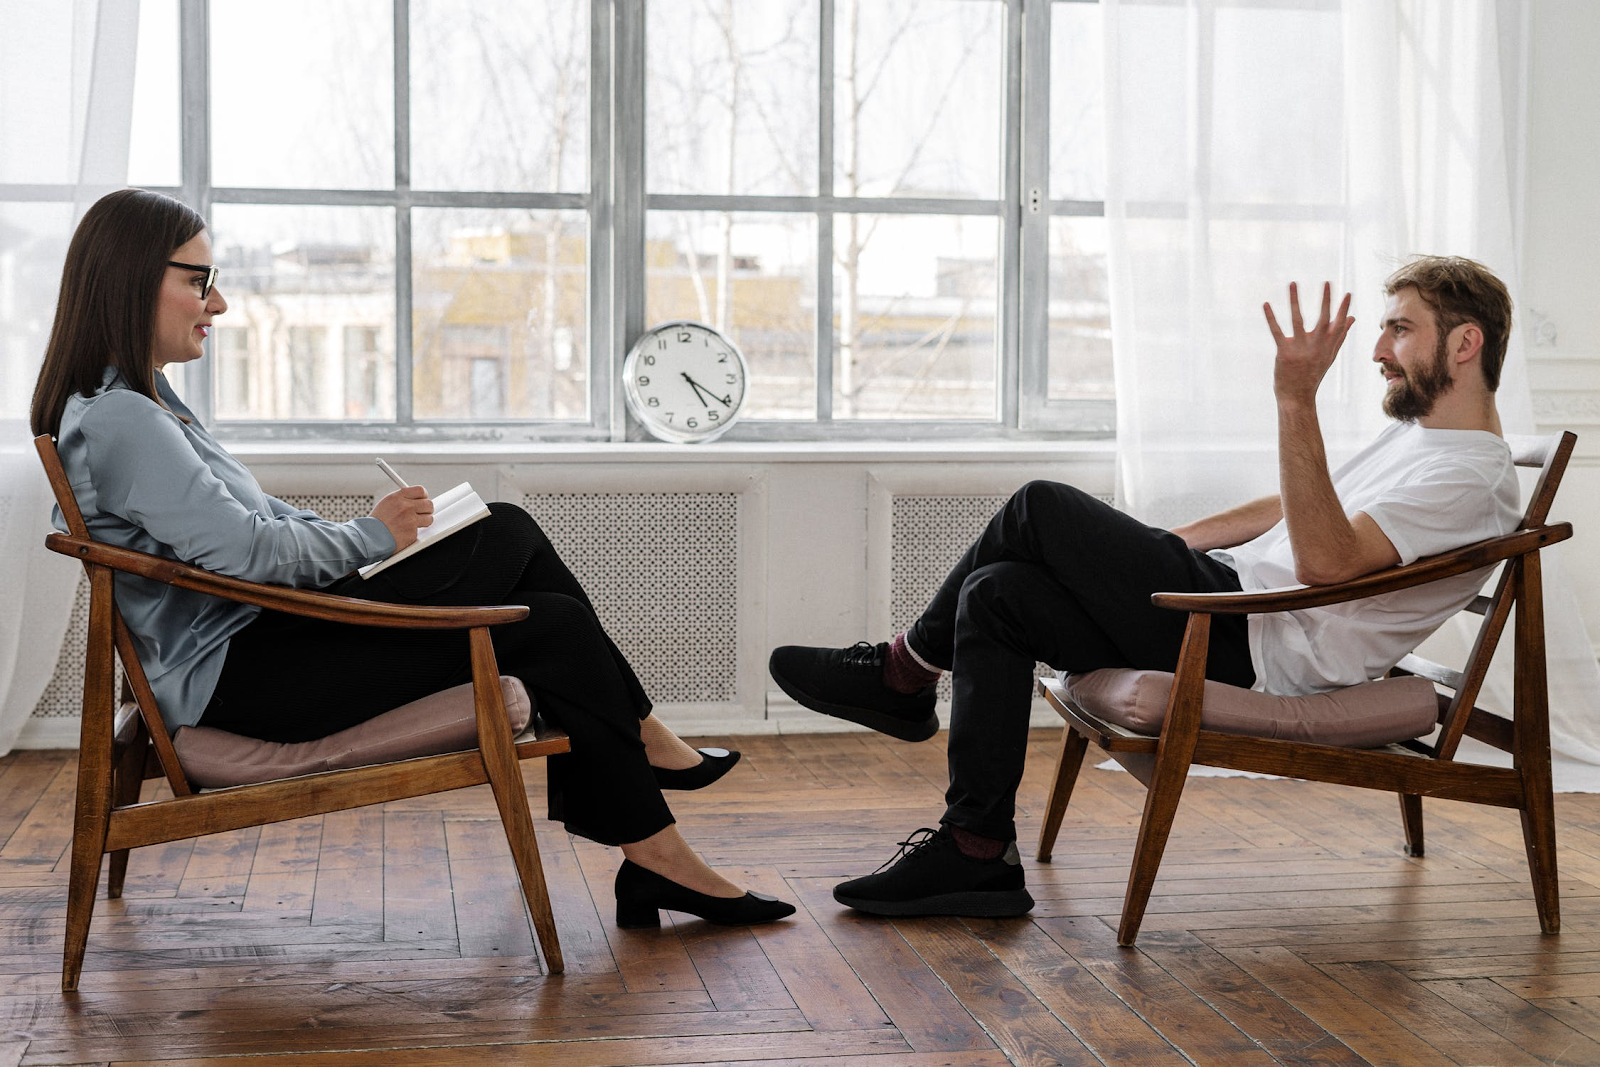 An image of two people in chairs sitting across from each other, with a clock balanced on the window between them. The woman is taking notes and listening as the man talks and gestures.